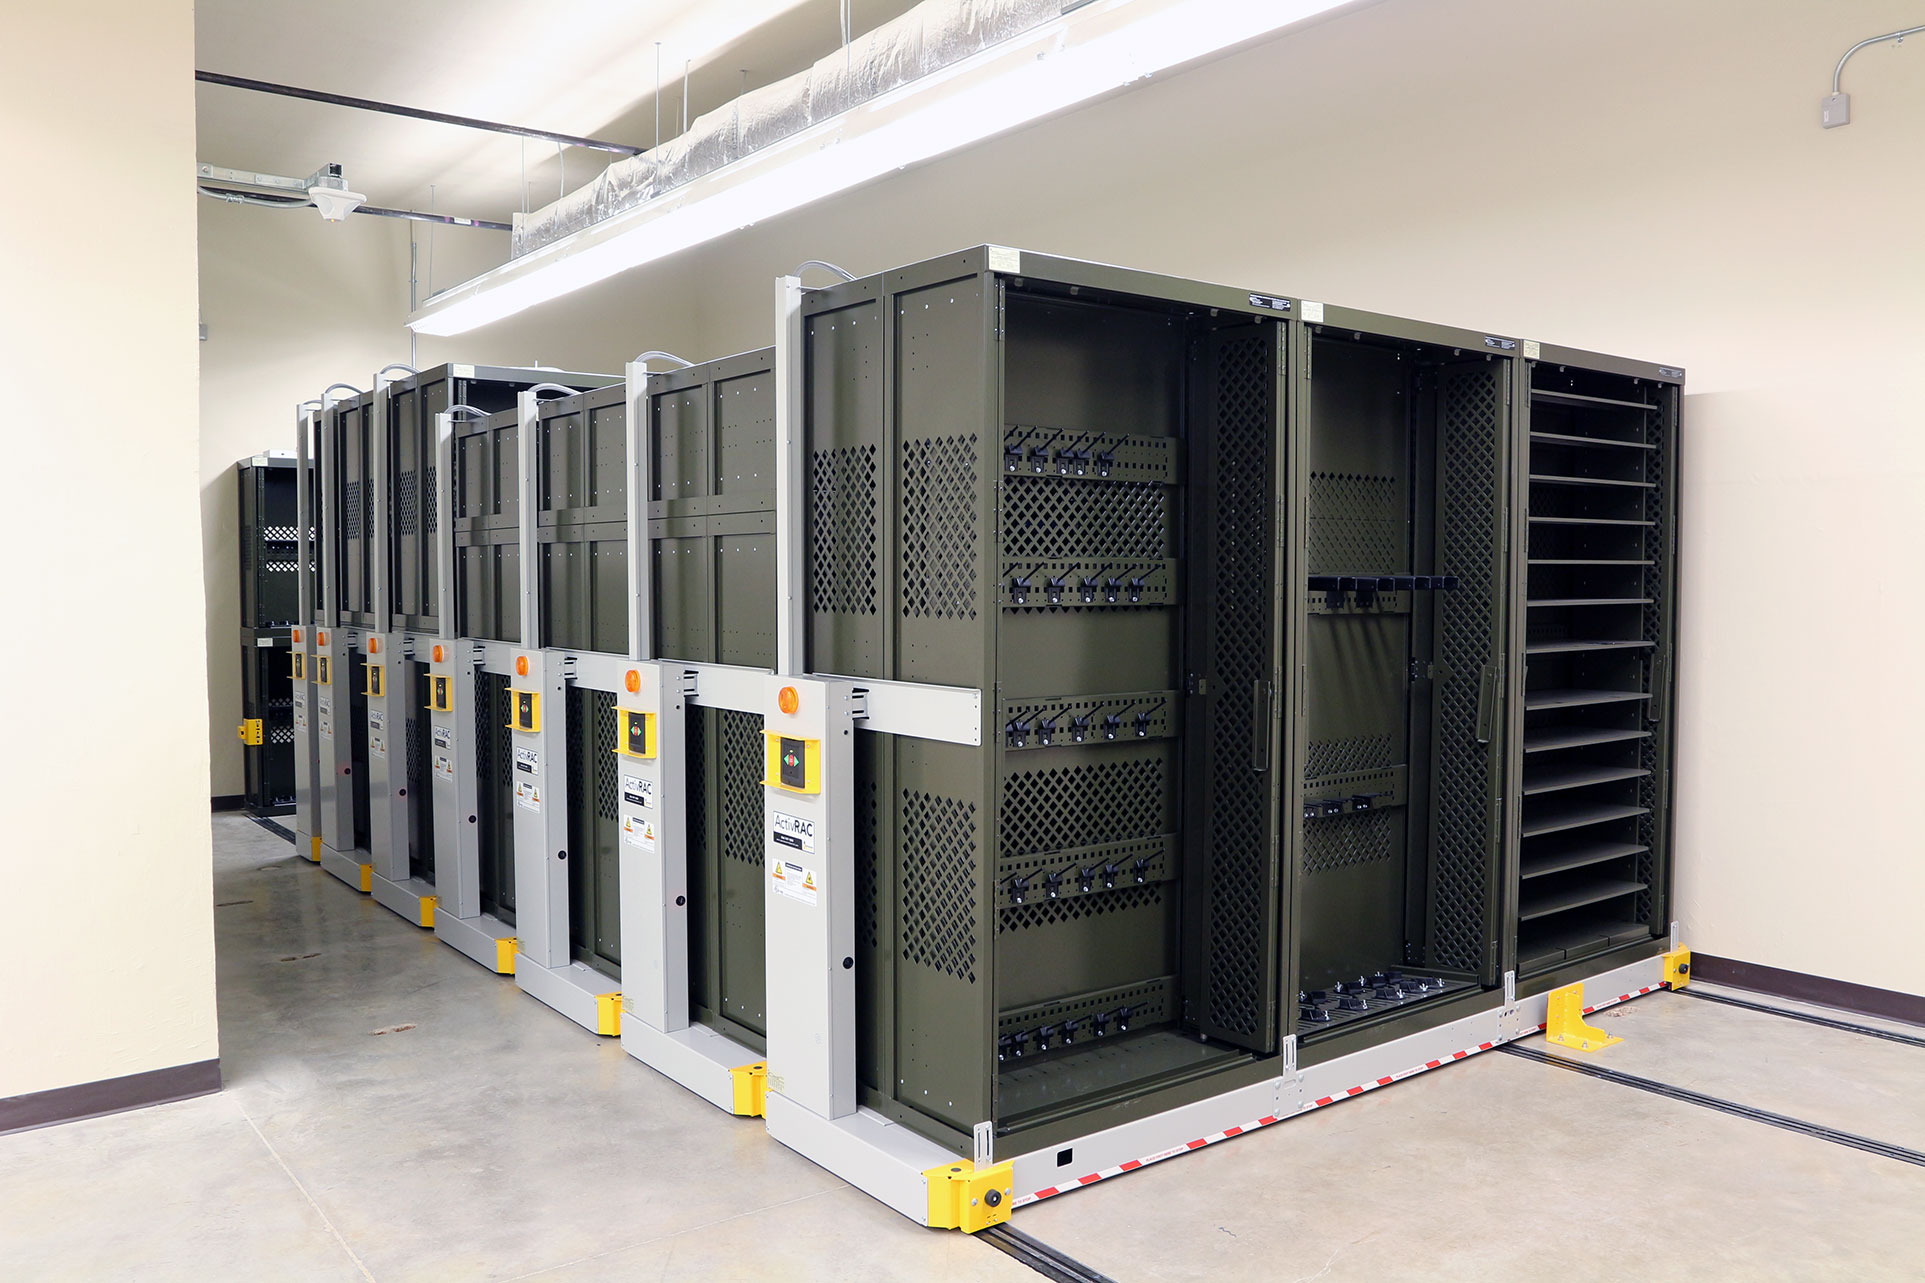 Weapon Rack 84 on mobile storage system